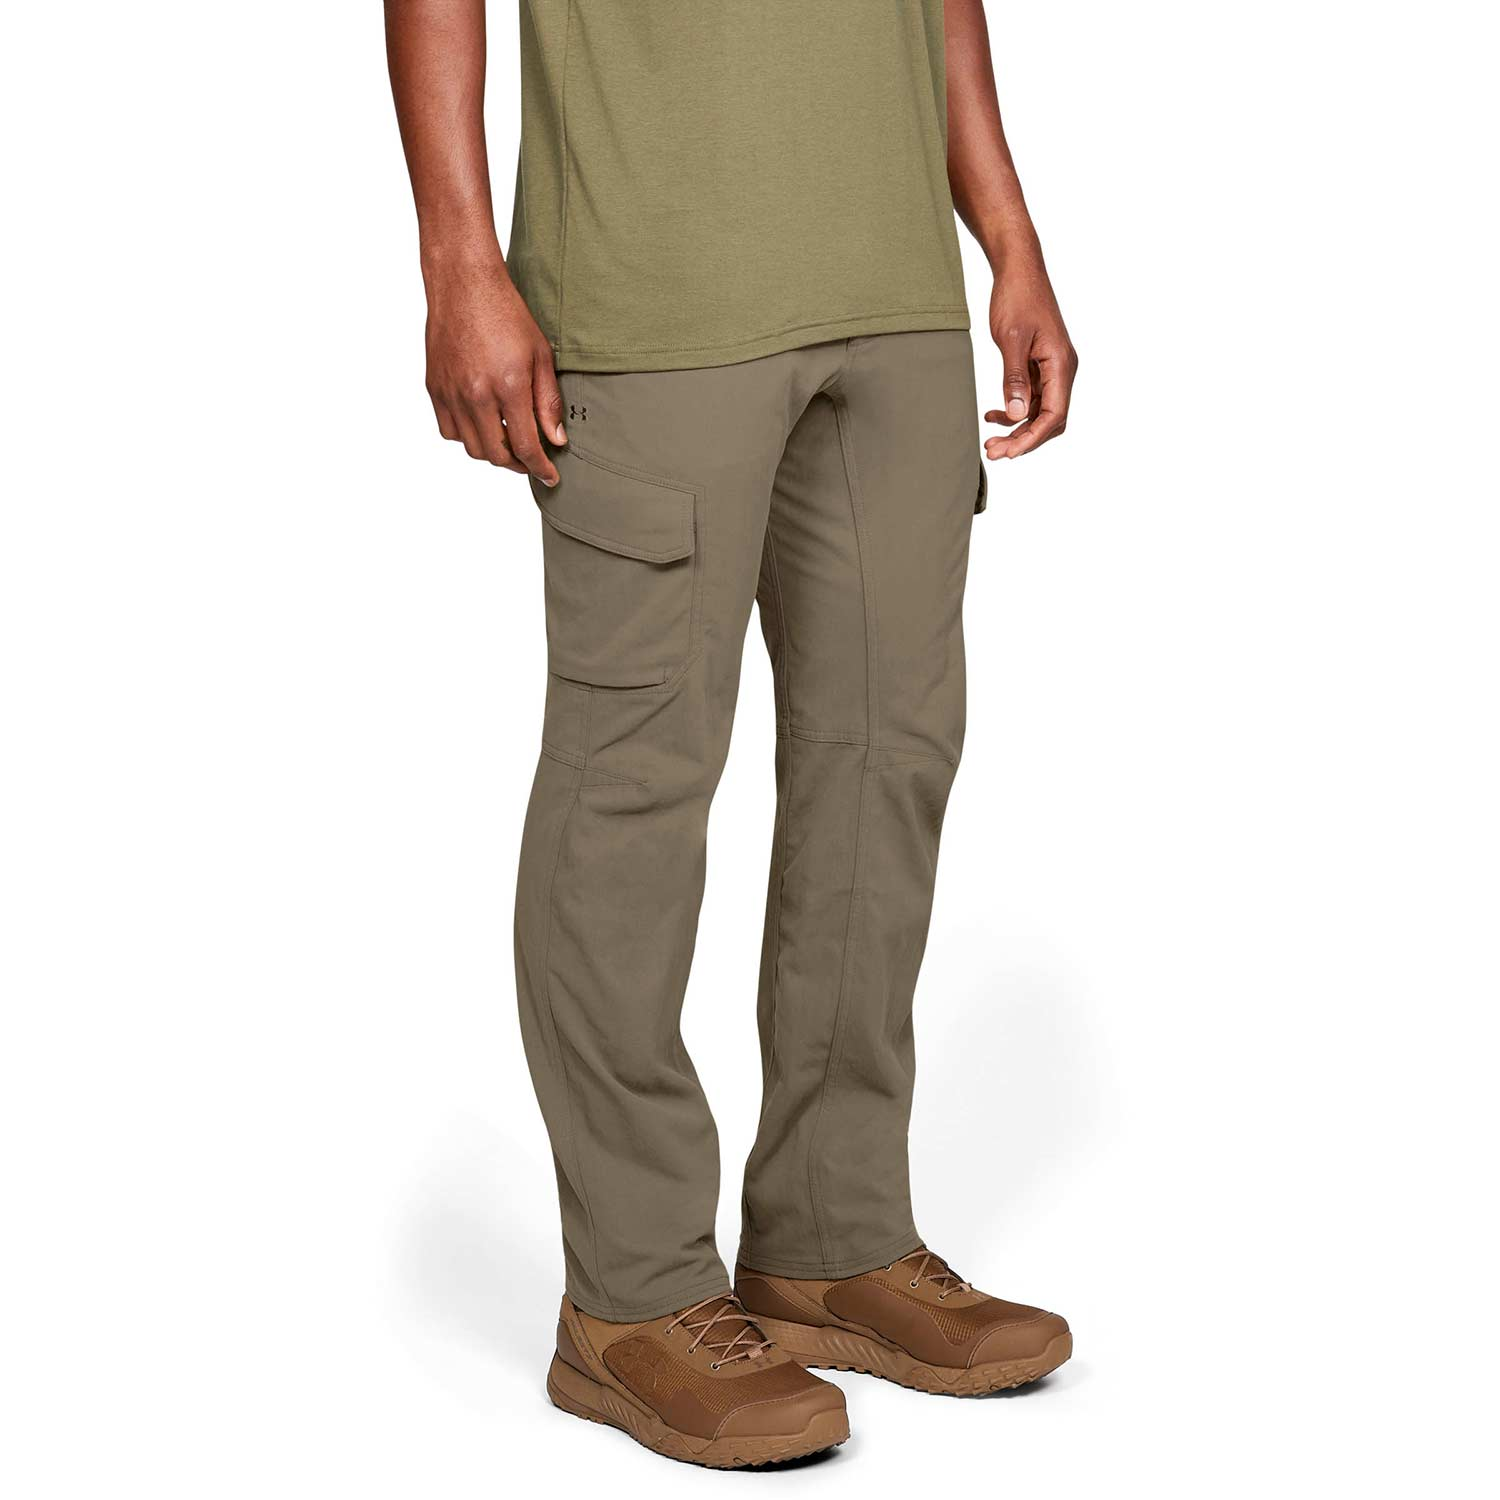 Under Armour Adapt Tactical Pants